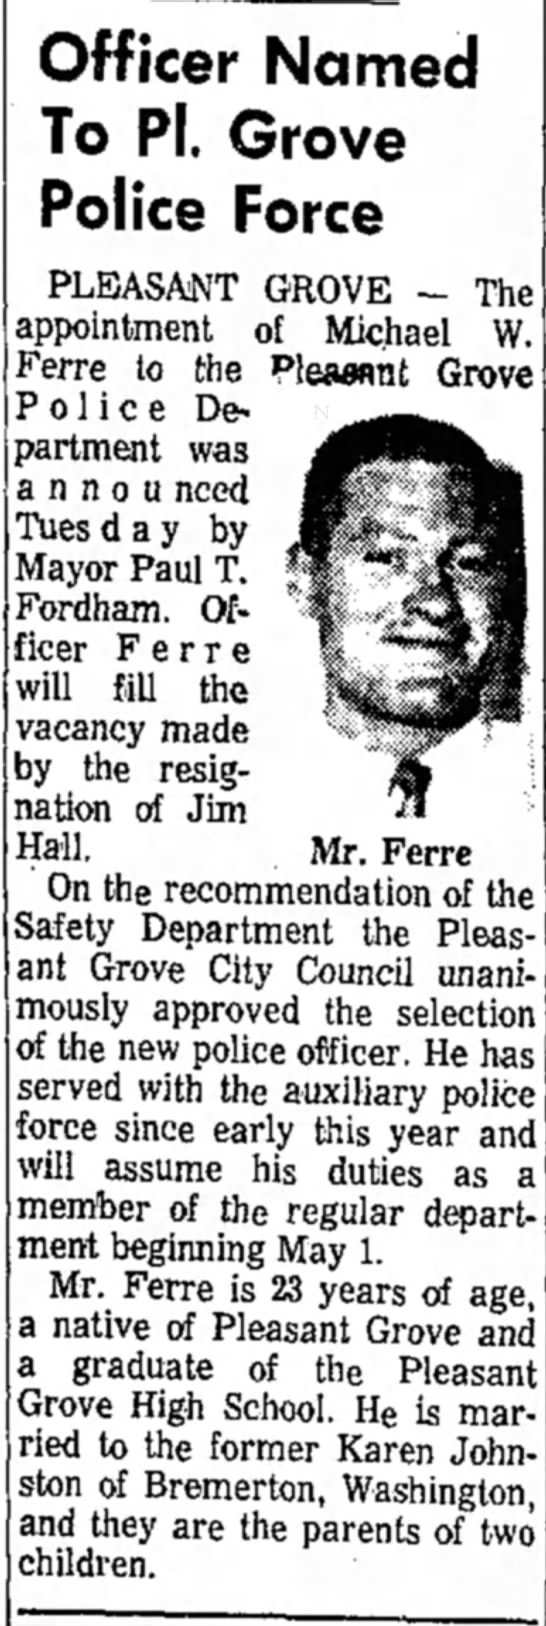 Michael W Ferre - Officer Named To PI. Grove Police Force...